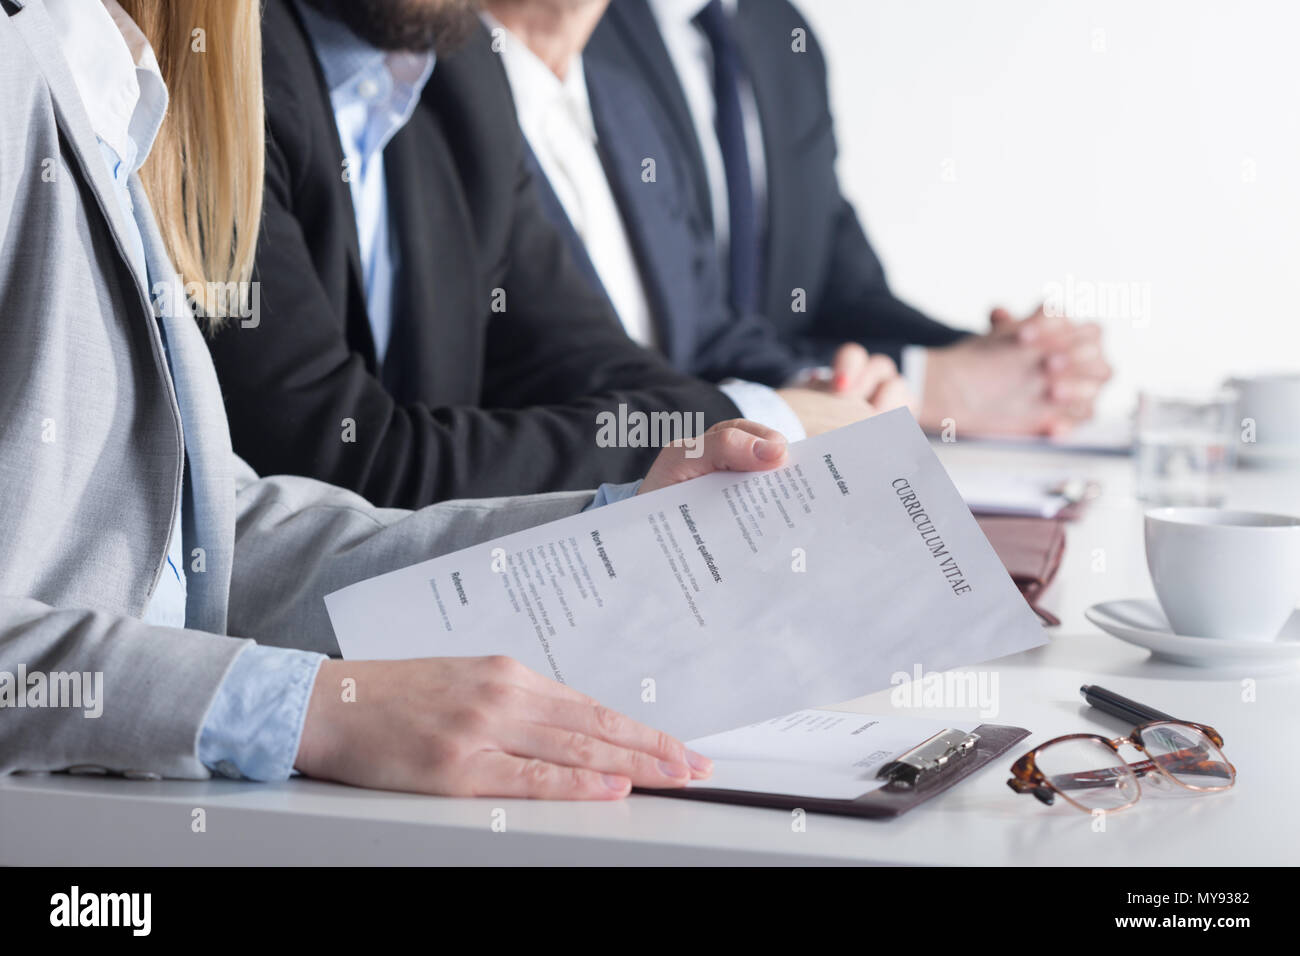 Woman holding CV sittting next to three businesspeople beside table - Stock Image